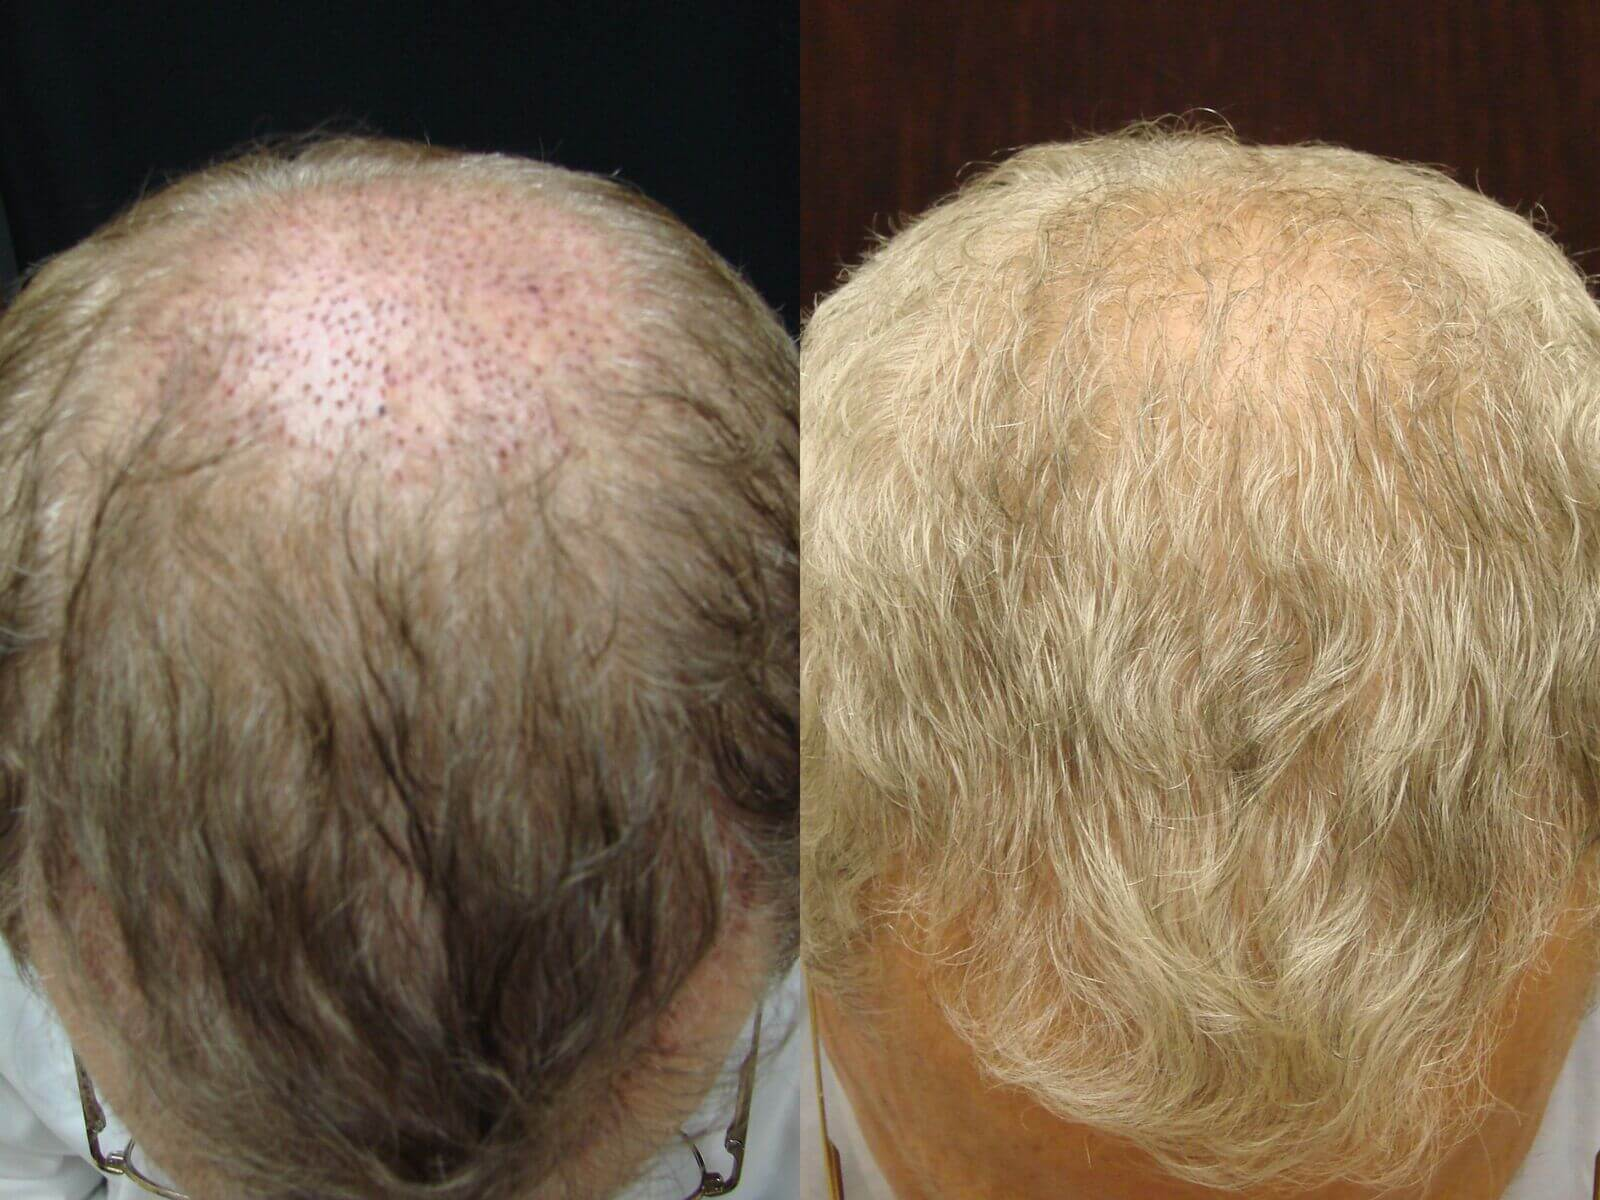 70 year old, 1,000 grafts, before and 8 months after